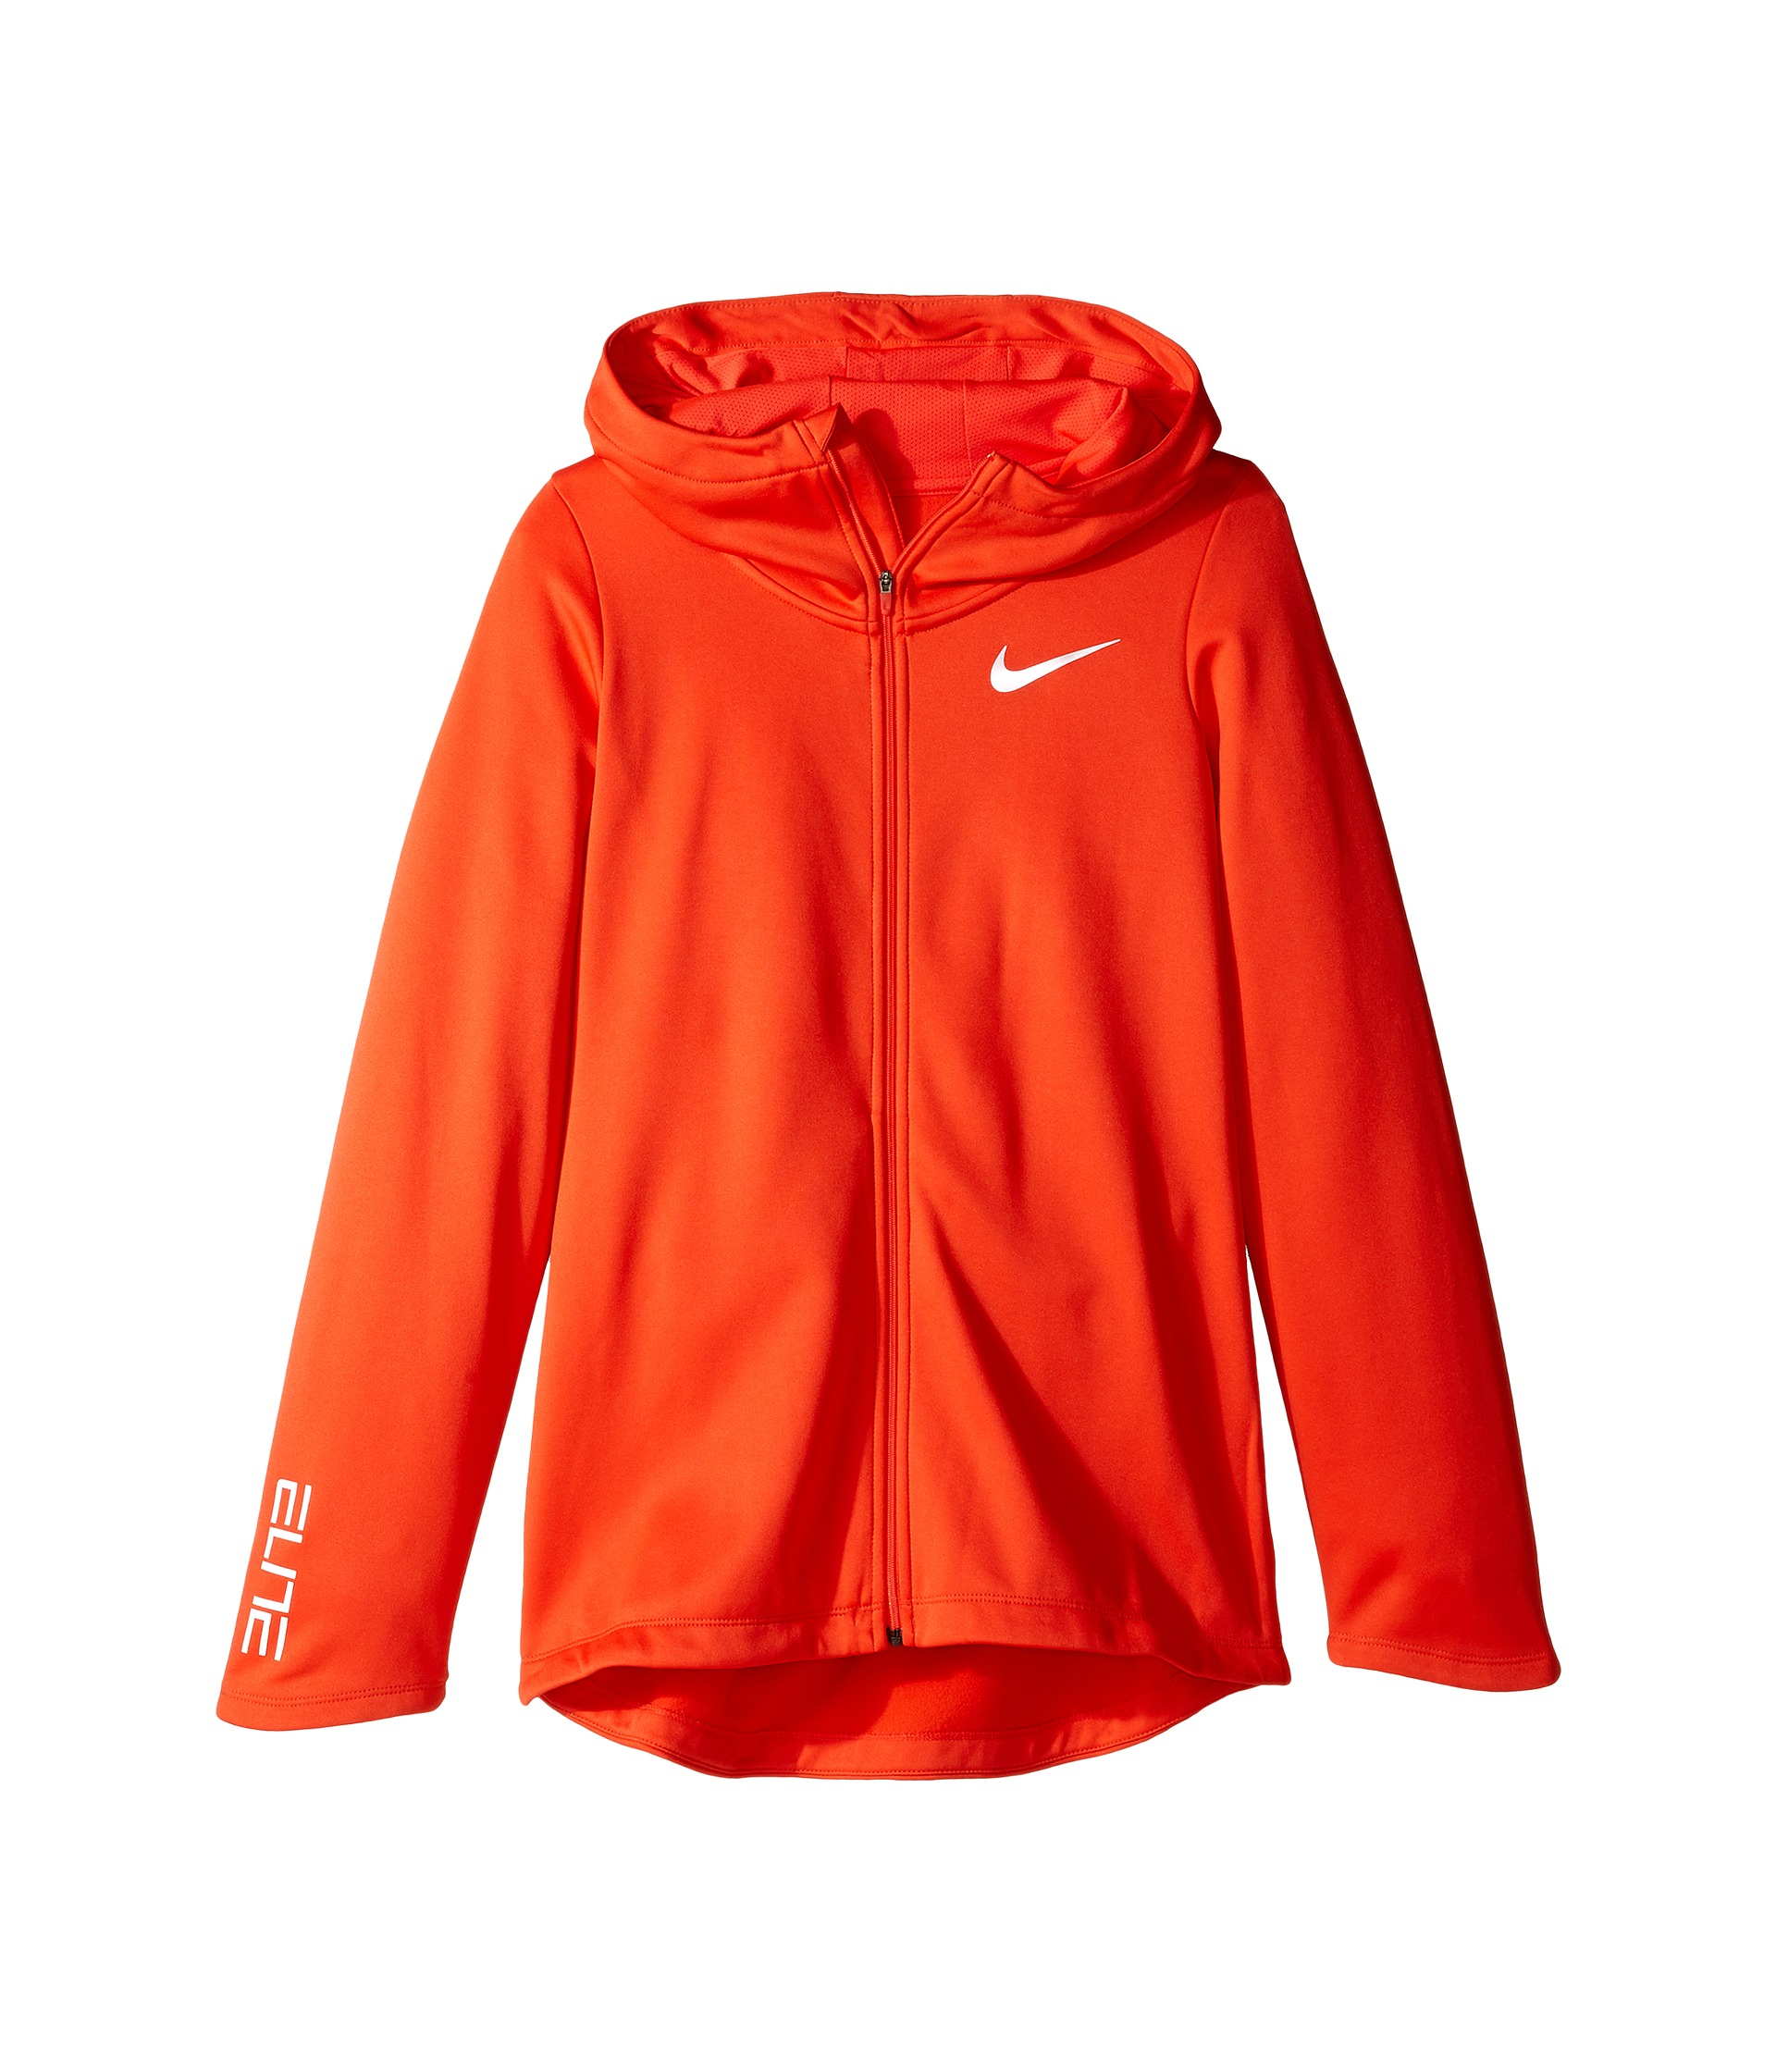 Nike basketball hoodies